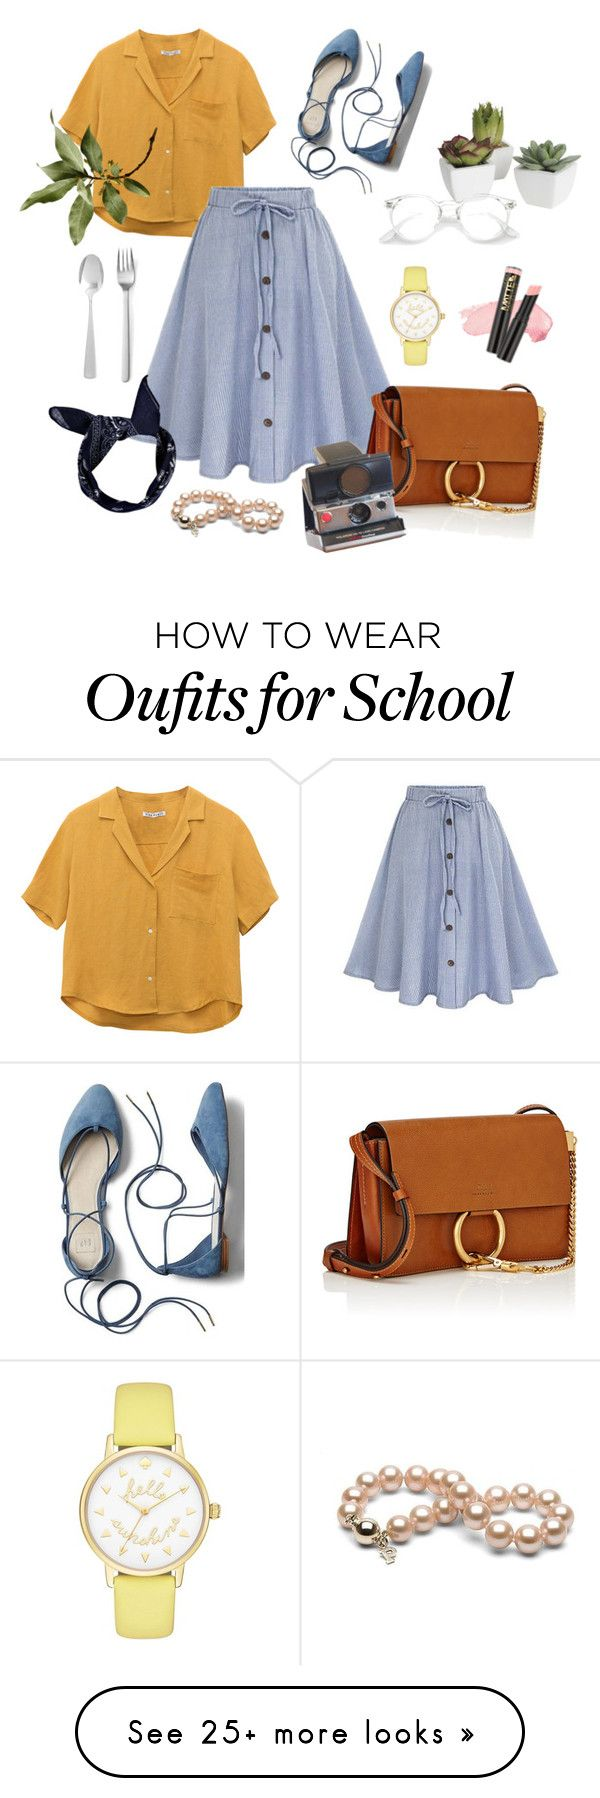 """069"" by euni-ce on Polyvore featuring Chloé, Pier 1 Imports, L.A. Girl, Kate Spade, Gap, Menu and Boohoo"